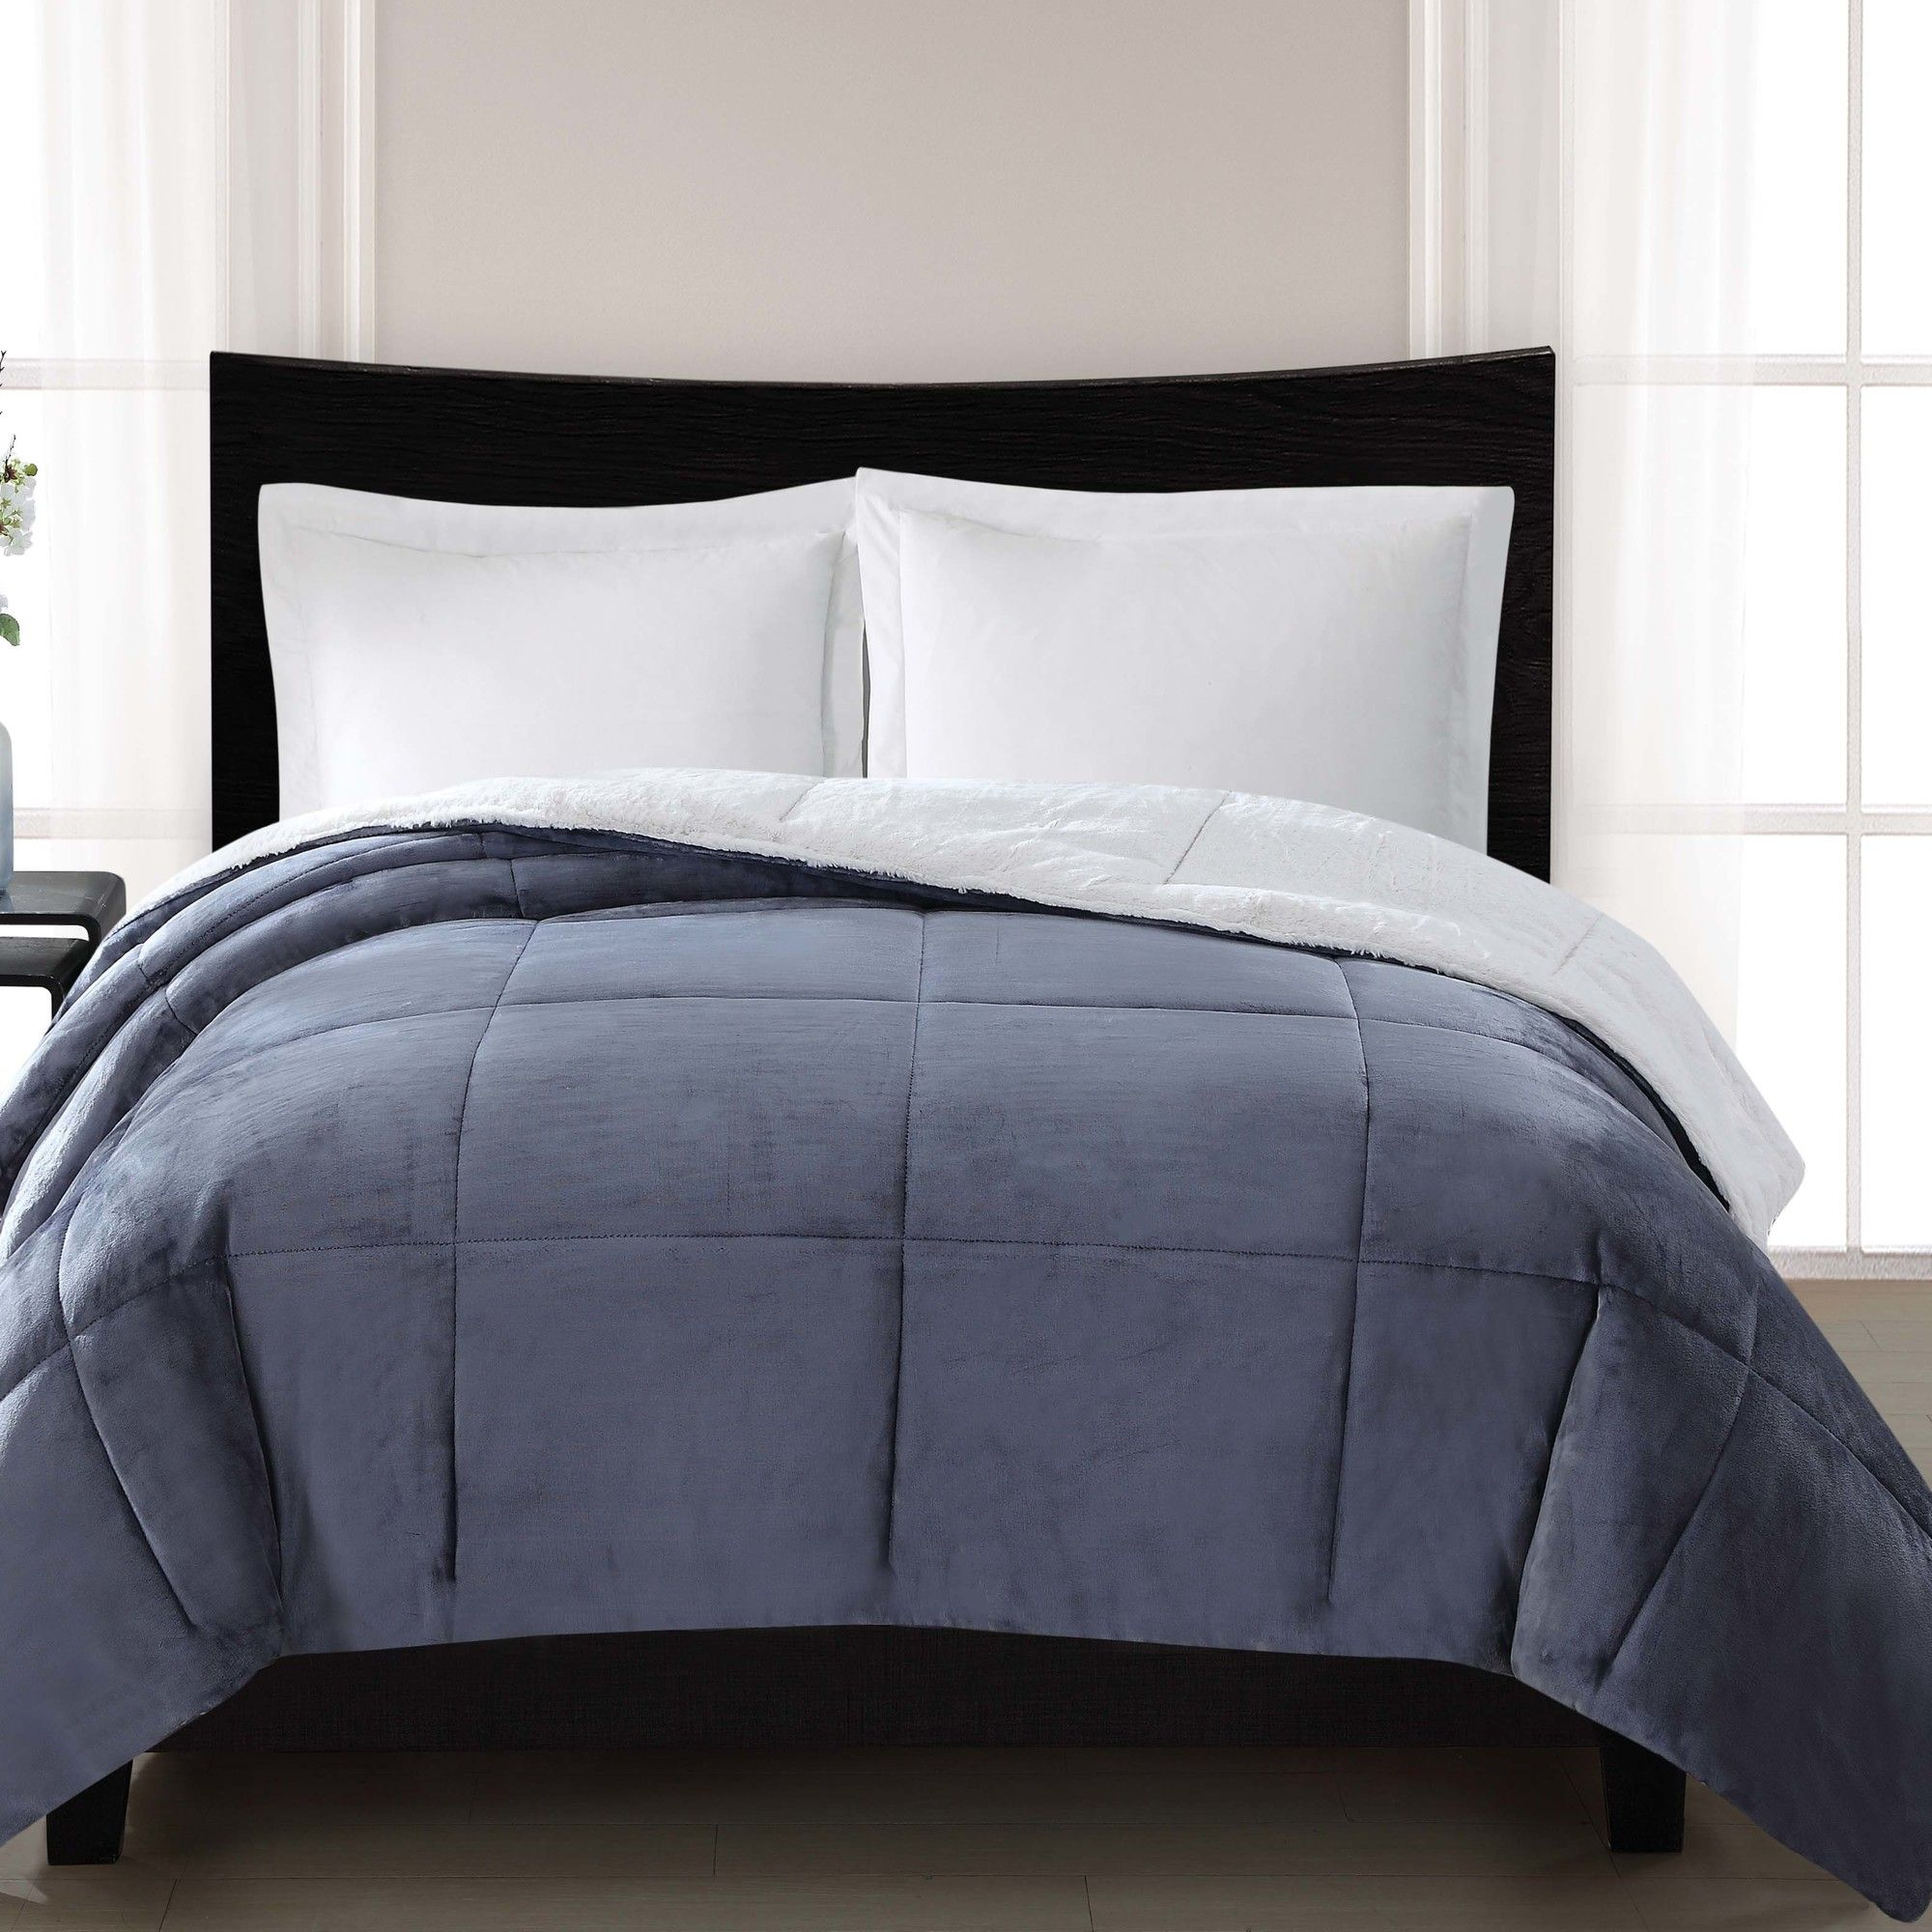 Supreme Down Alternative Comforter Comforters, Comforter